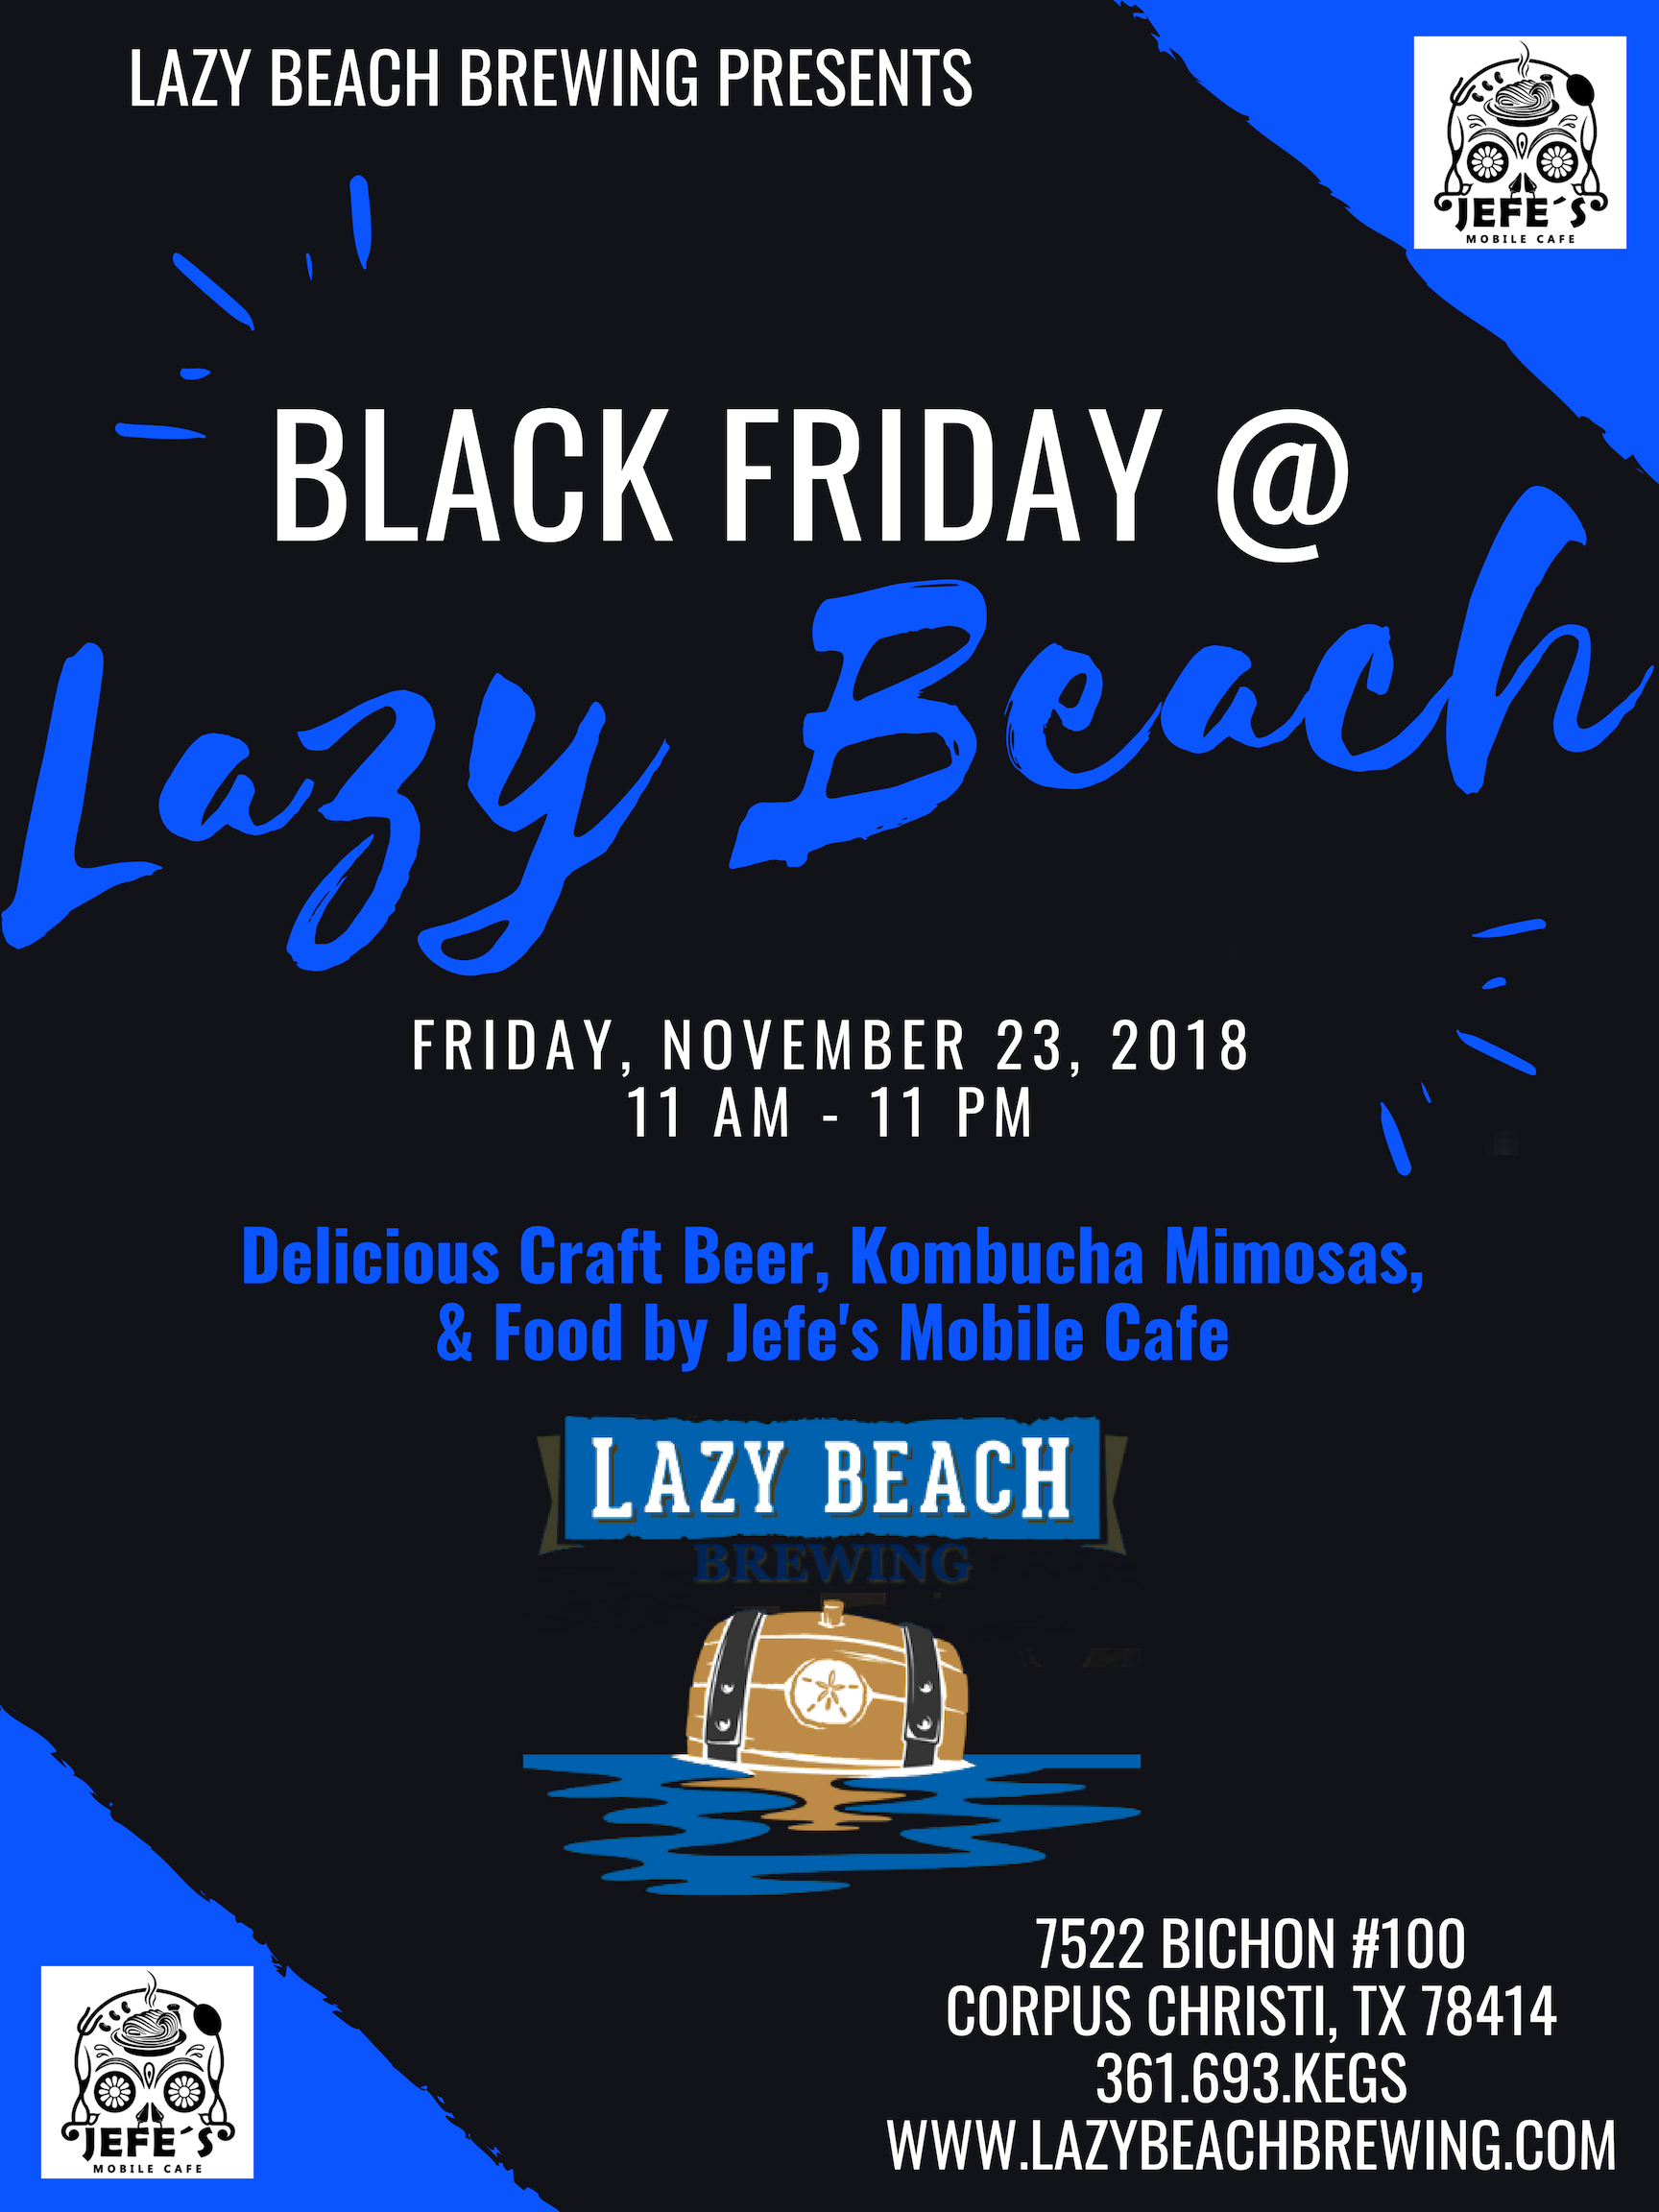 Black Friday @ Lazy Beach